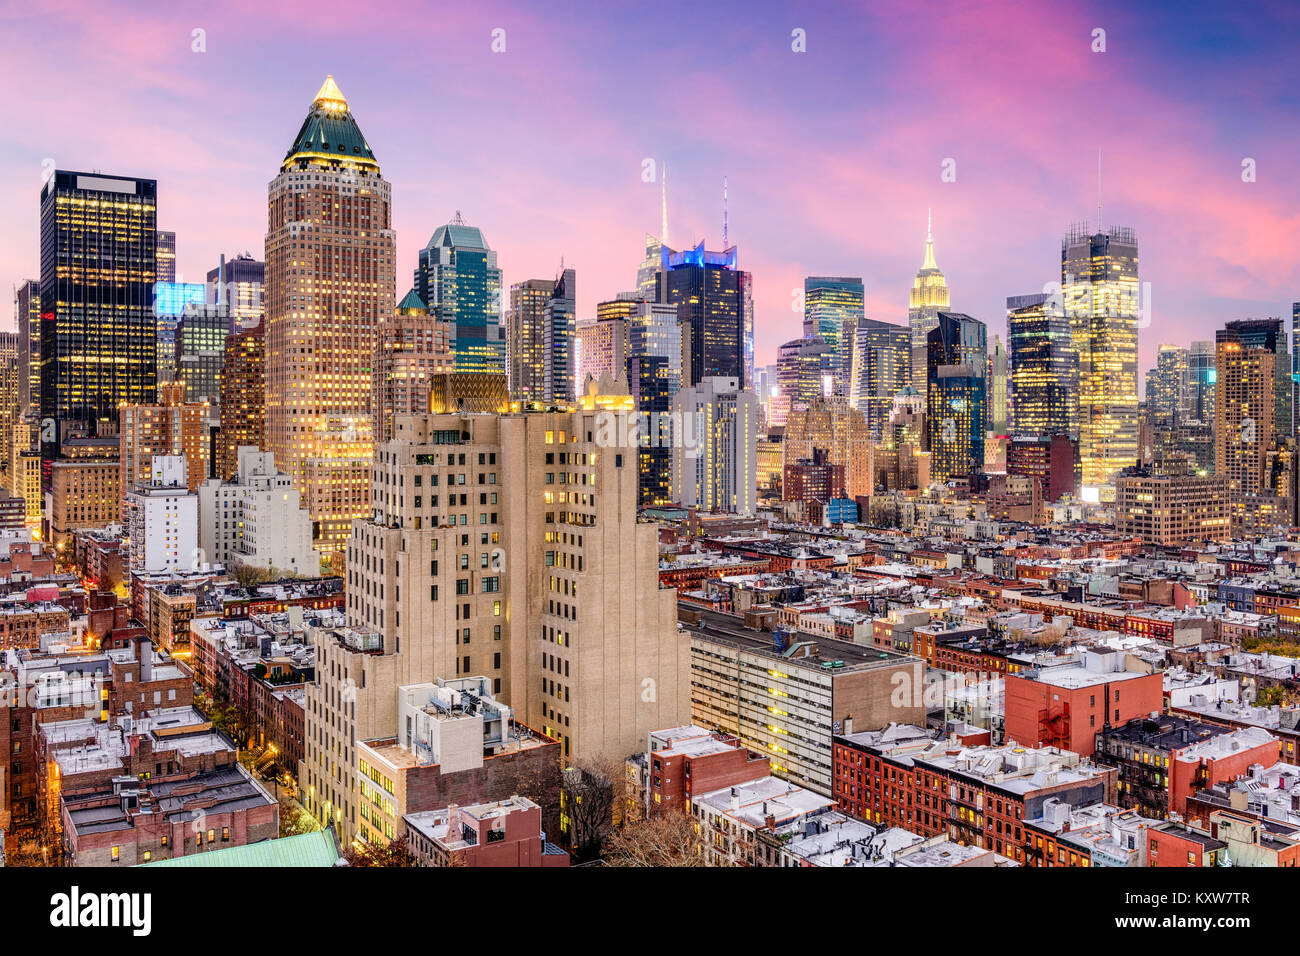 new york city usa midtown manhattan skyline over hells kitchen stock image - Hells Kitchen Manhattan